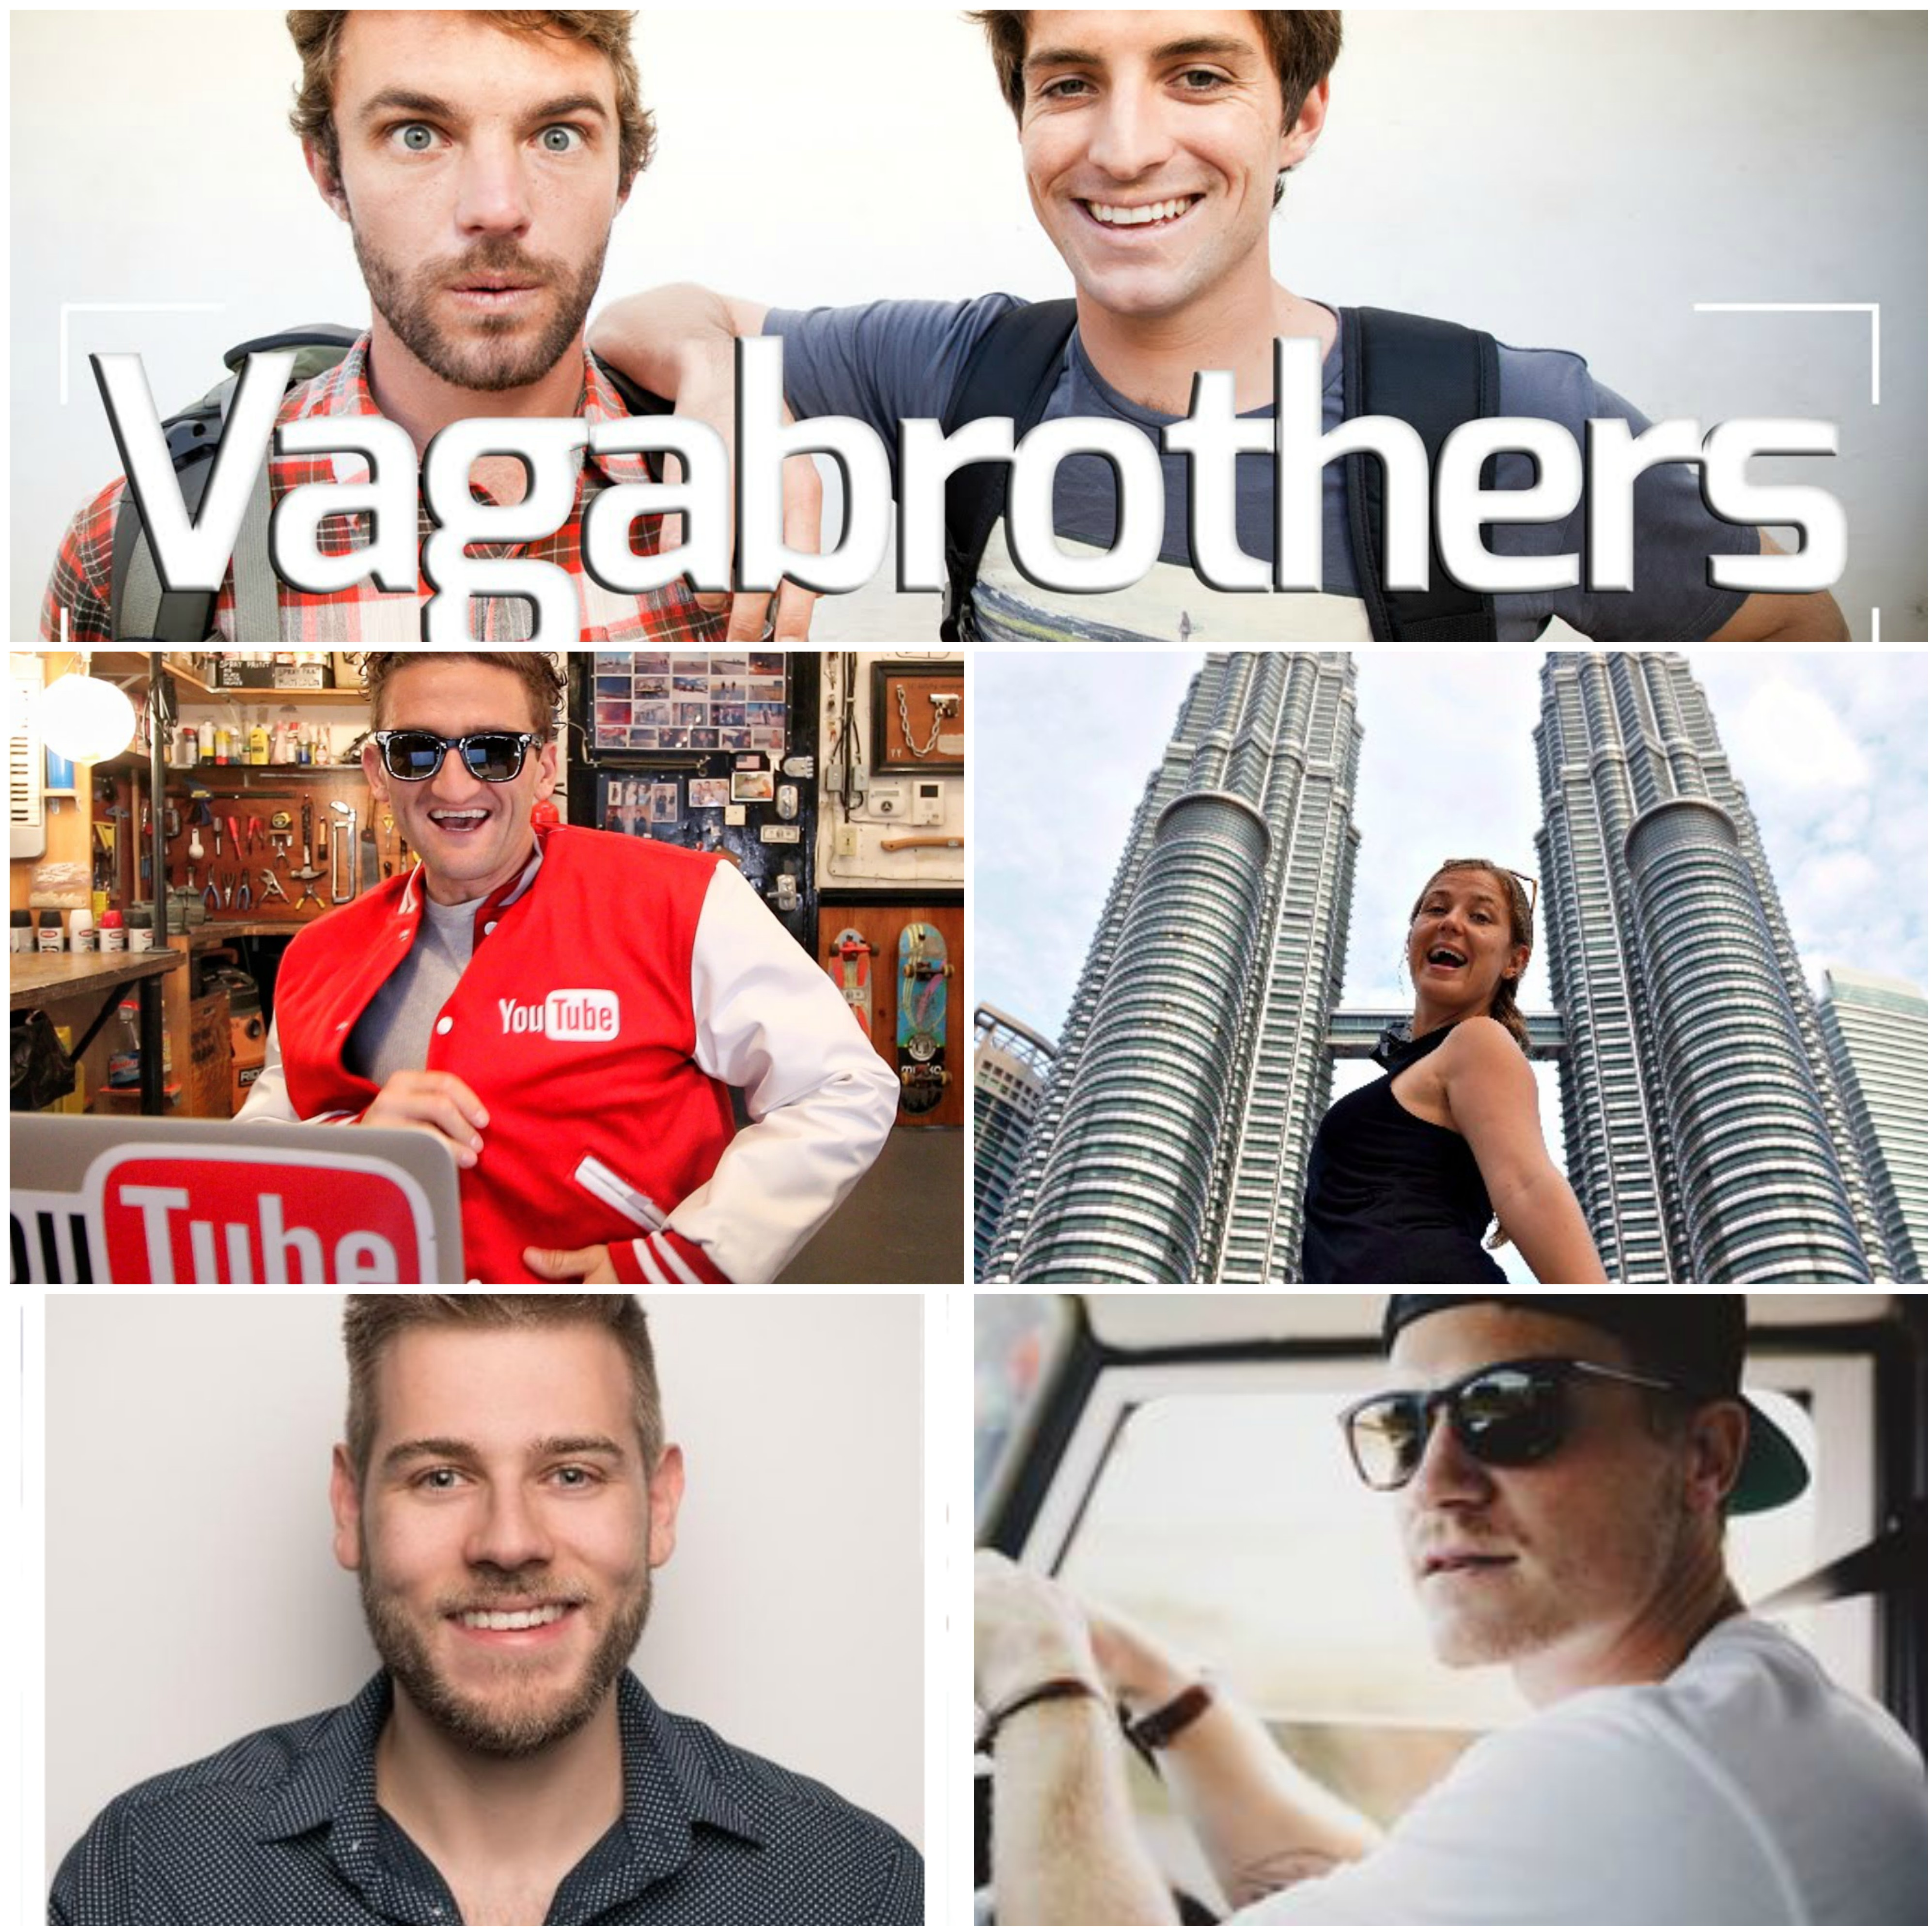 The Top 5 Digital Nomad YouTube Vloggers